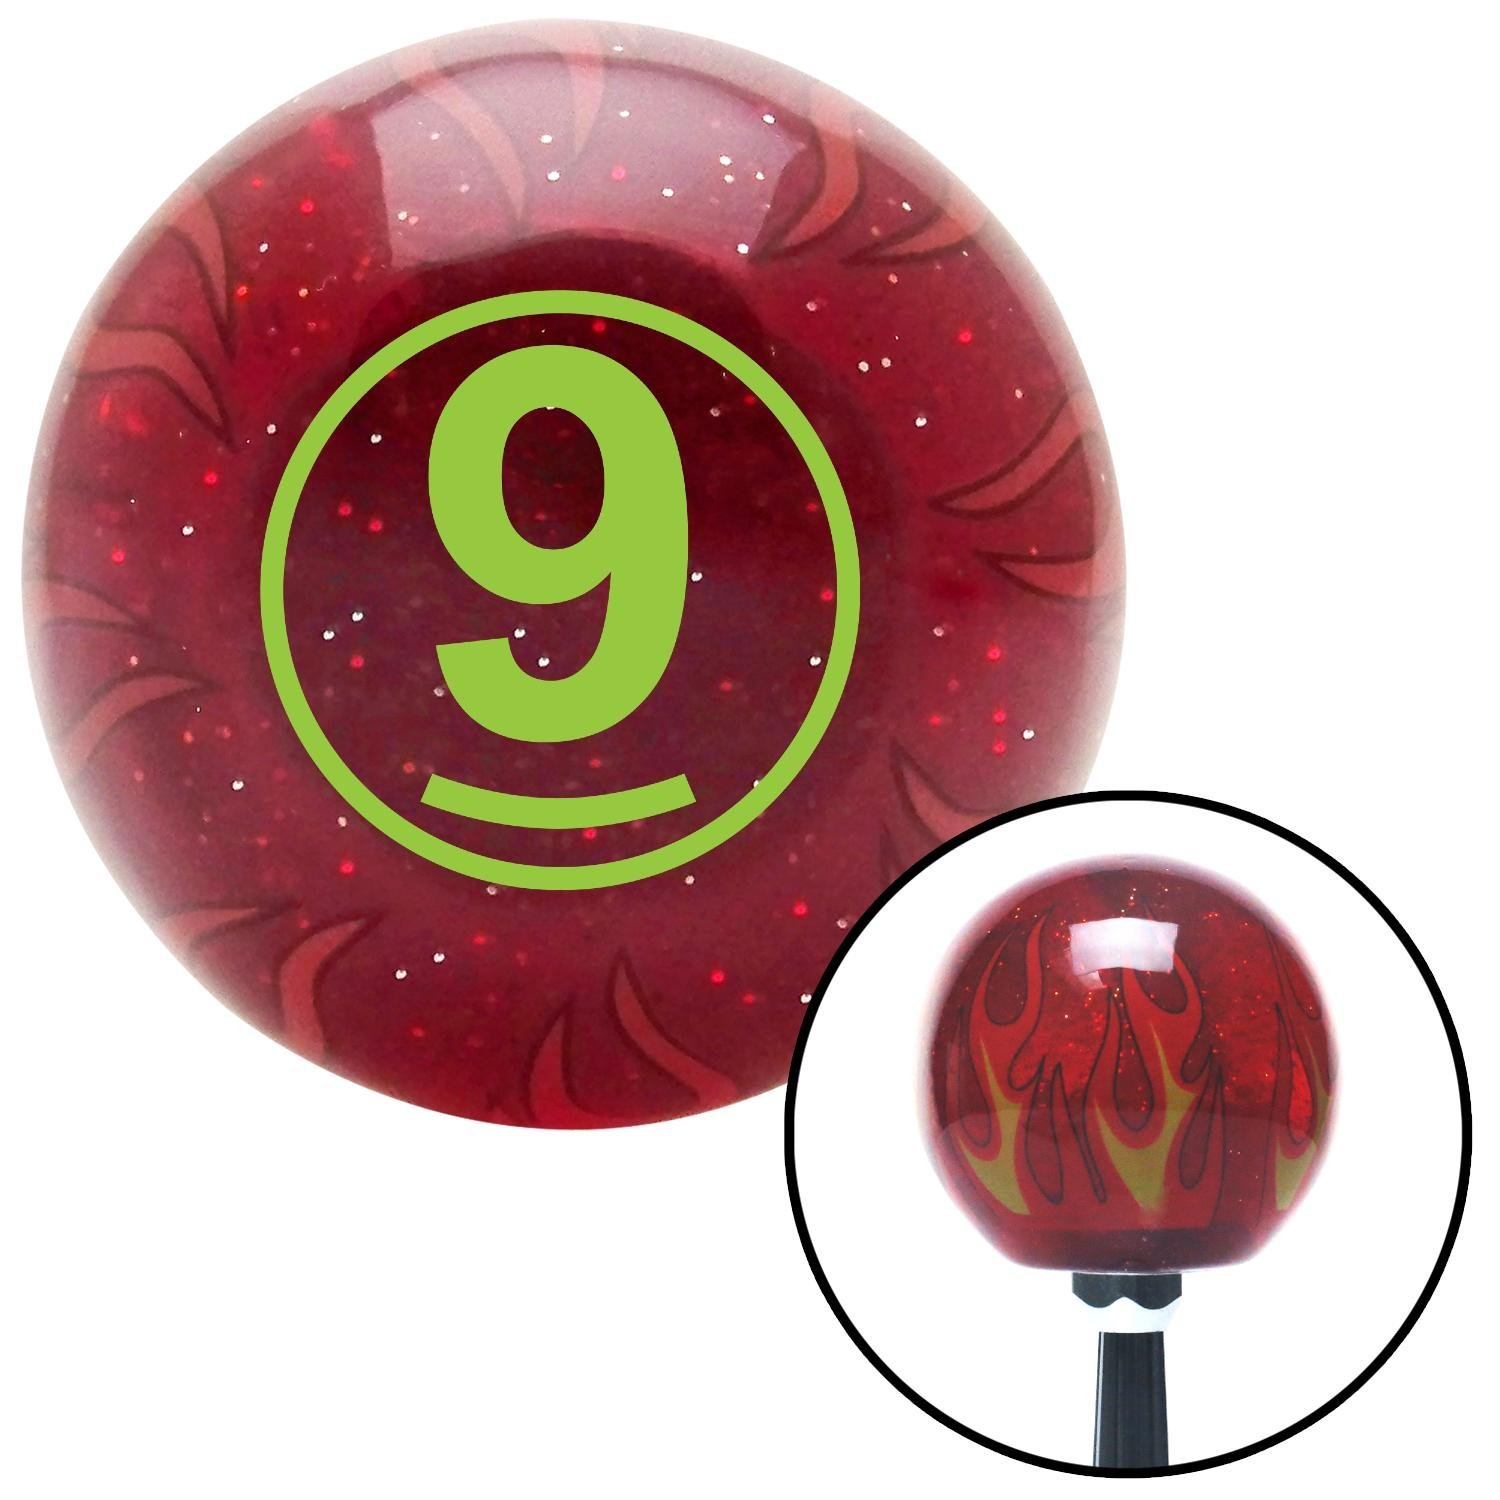 American Shifter 236302 Red Flame Metal Flake Shift Knob with M16 x 1.5 Insert Green Ball #9